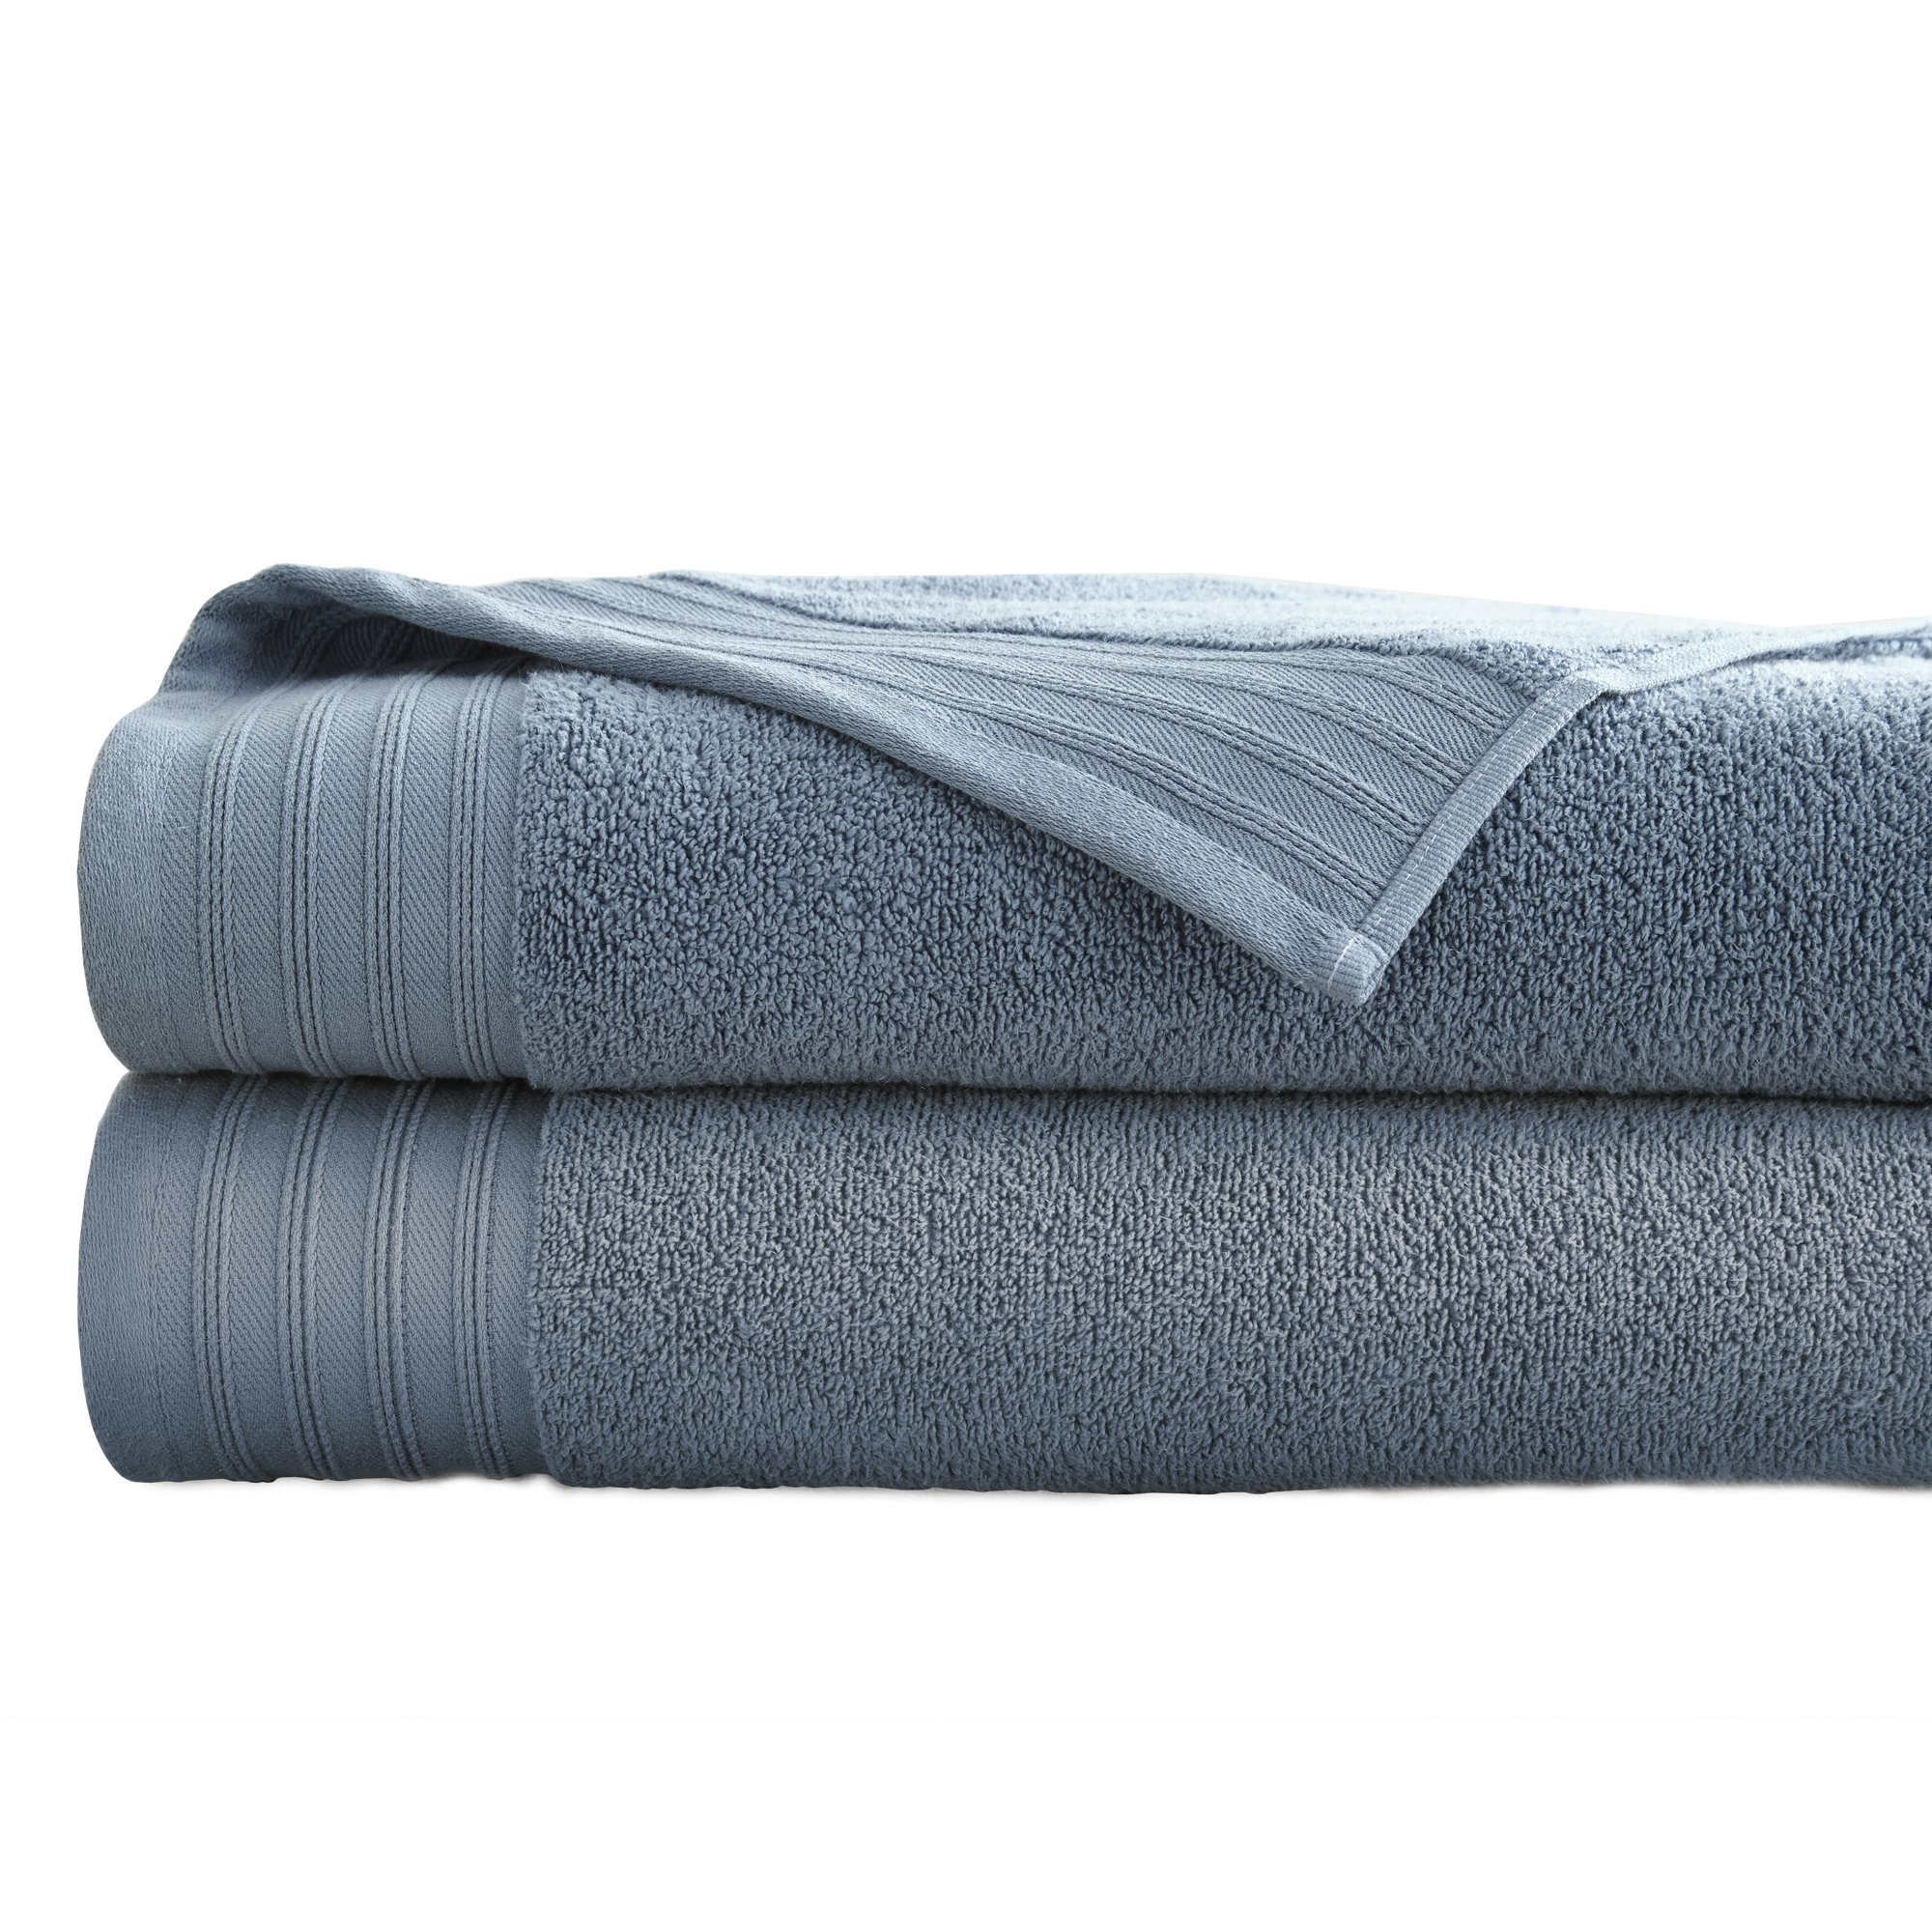 Amrapur Overseas 2-Pack 100% Combed Cotton Super Soft Oversized 450GSM Quick-Dry Bath Sheet Set [Denim]